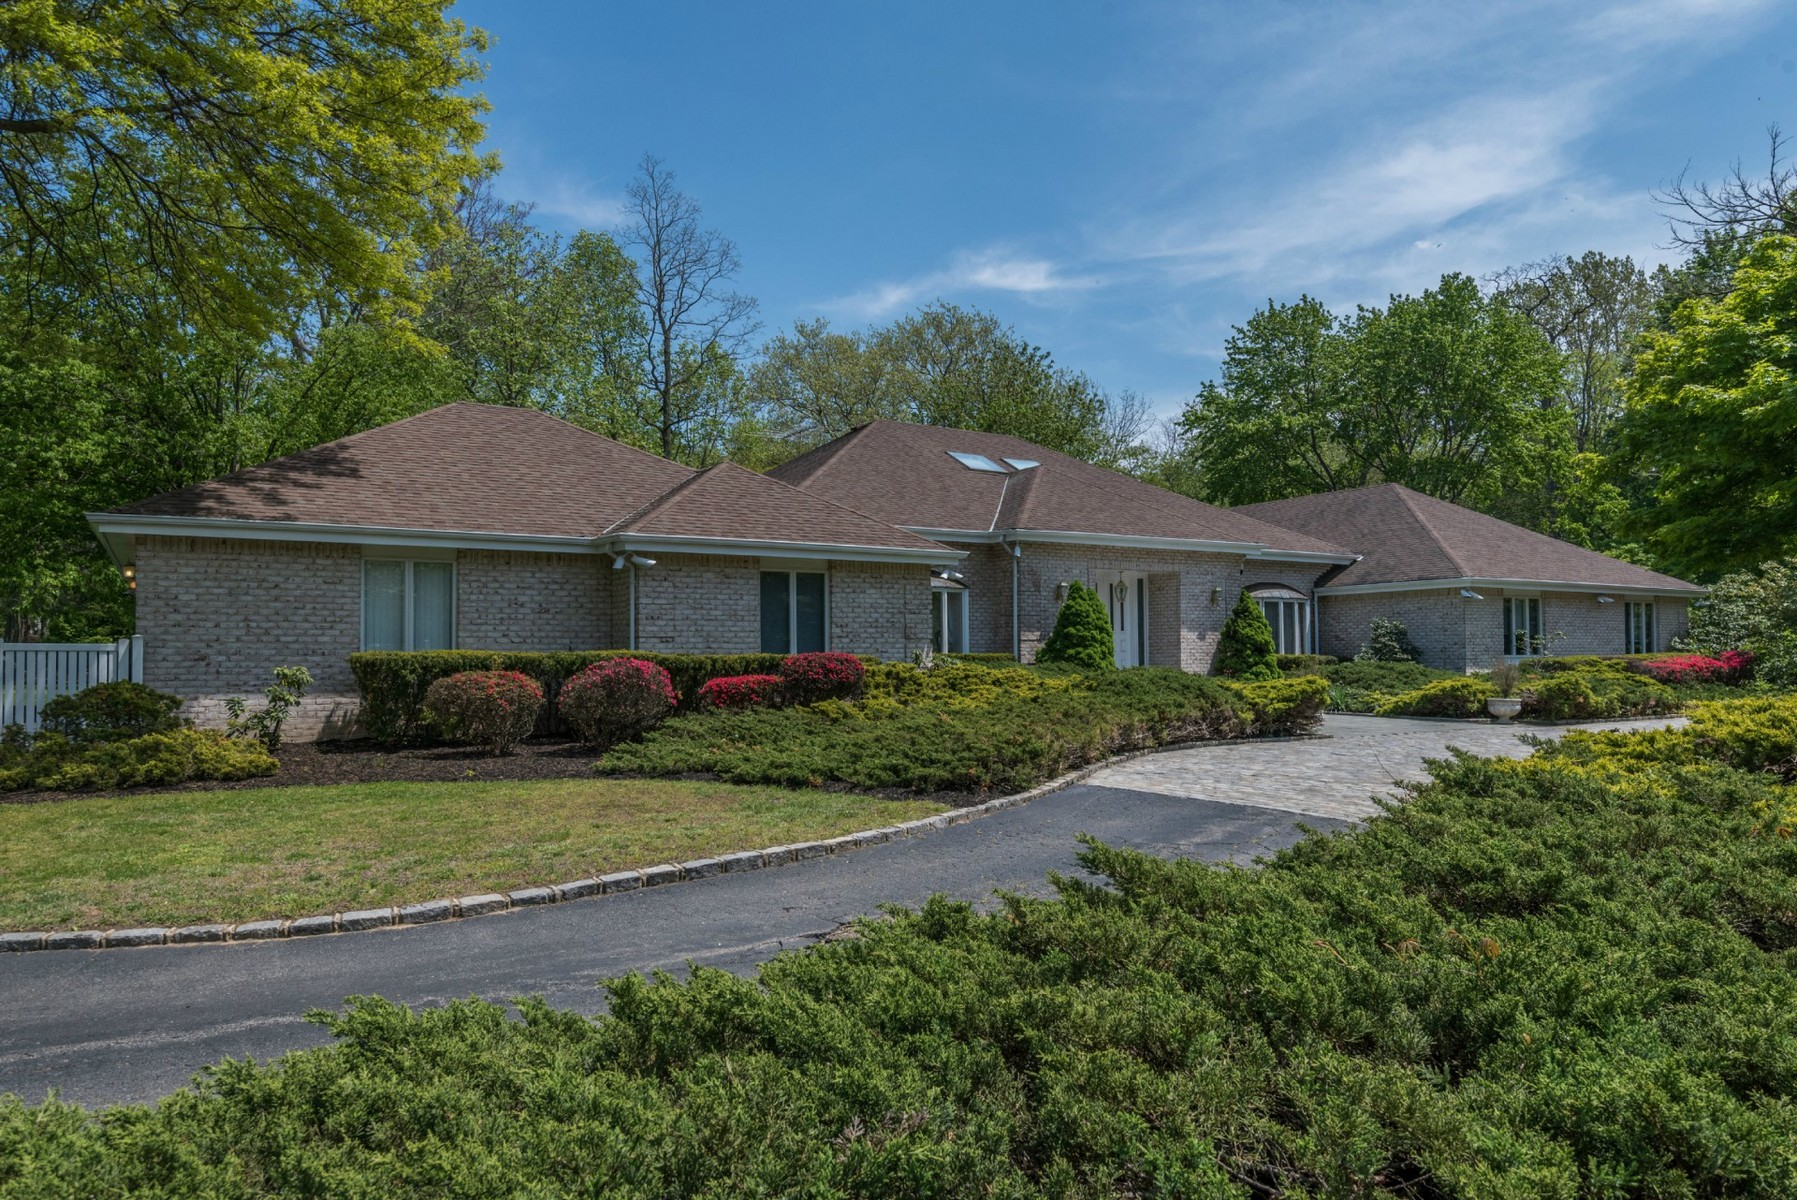 Single Family Home for Sale at Exp Ranch Lattingtown, New York, 11560 United States